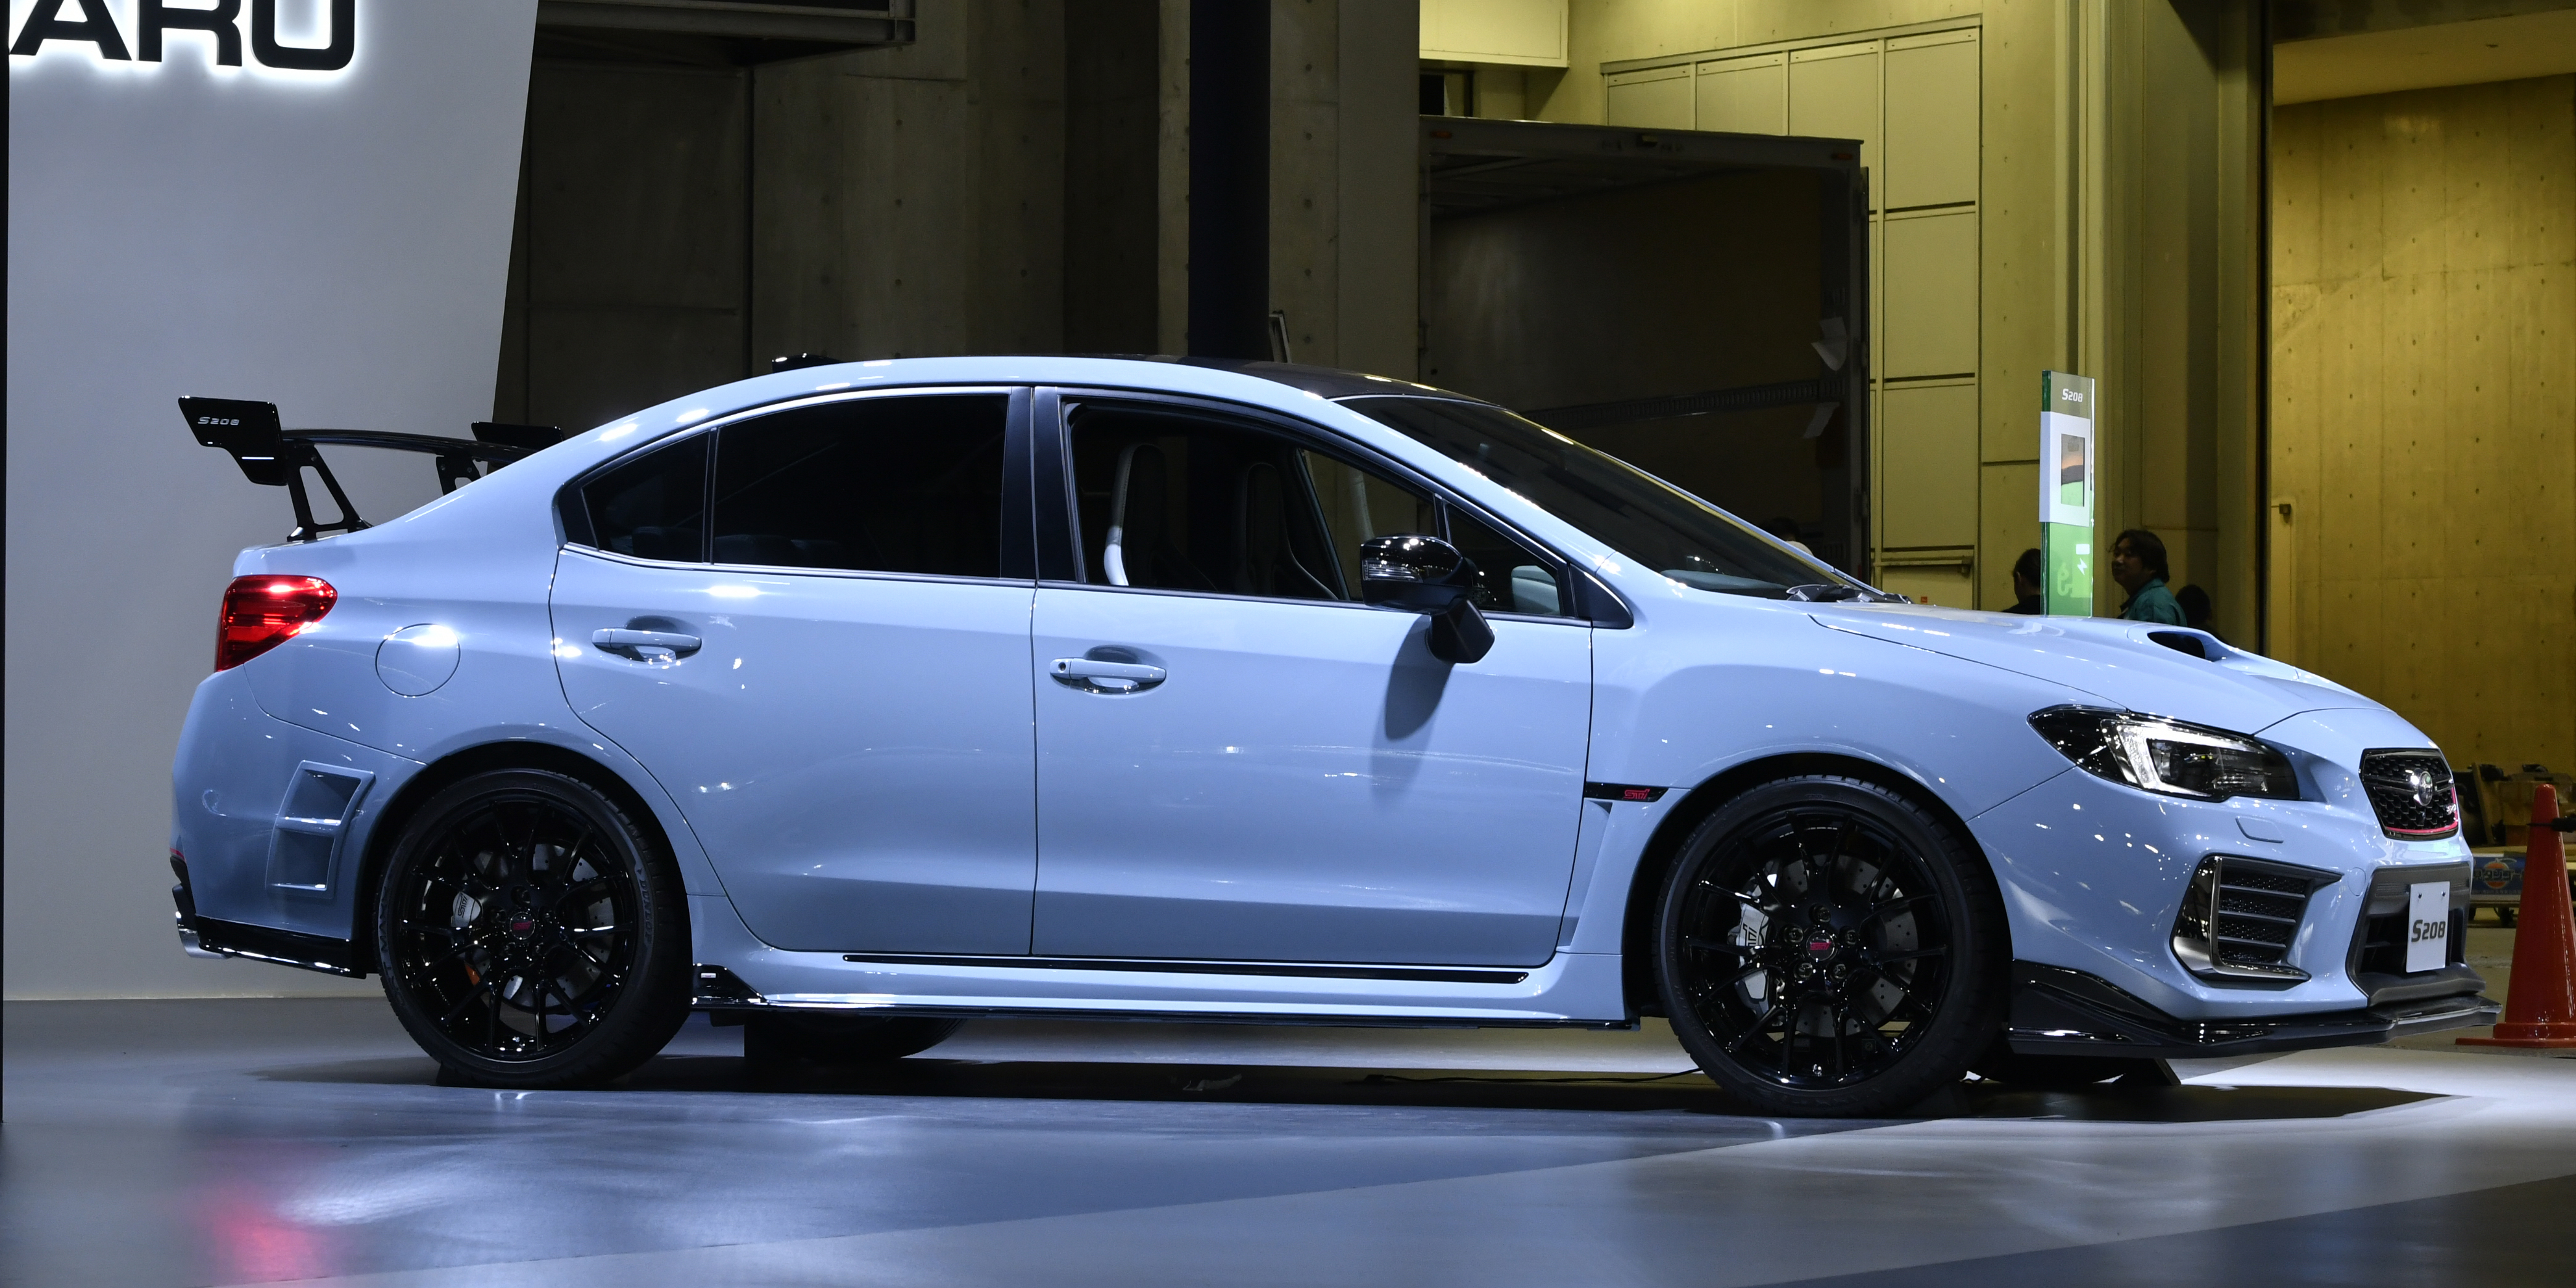 subaru wrx sti s208 unveiled in tokyo photos 1 of 11. Black Bedroom Furniture Sets. Home Design Ideas